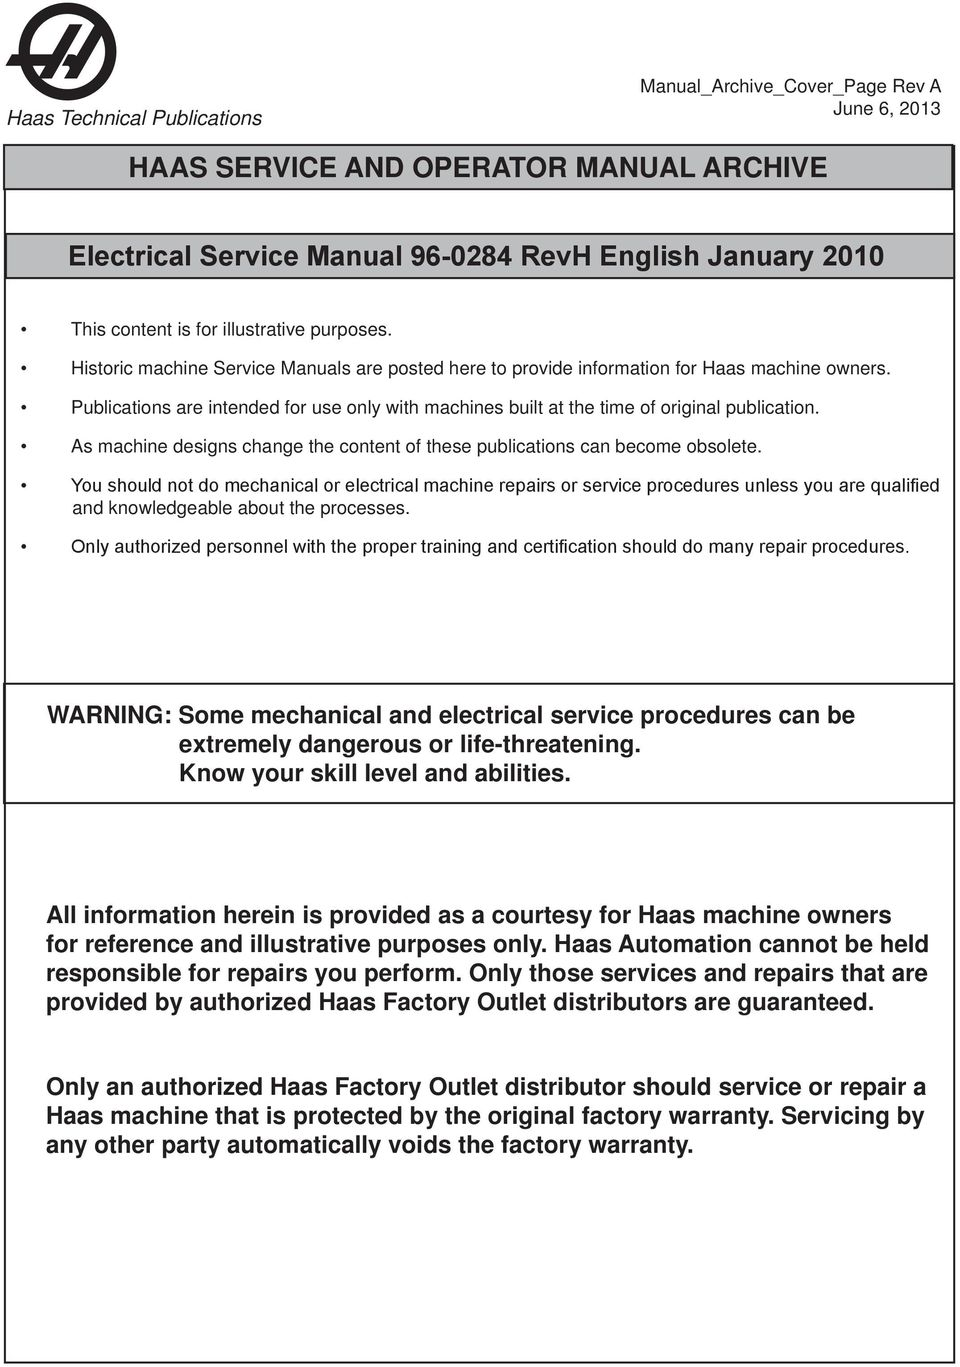 haas service and operator manual archive electrical service publications are intended for use only machines built at the time of original publication